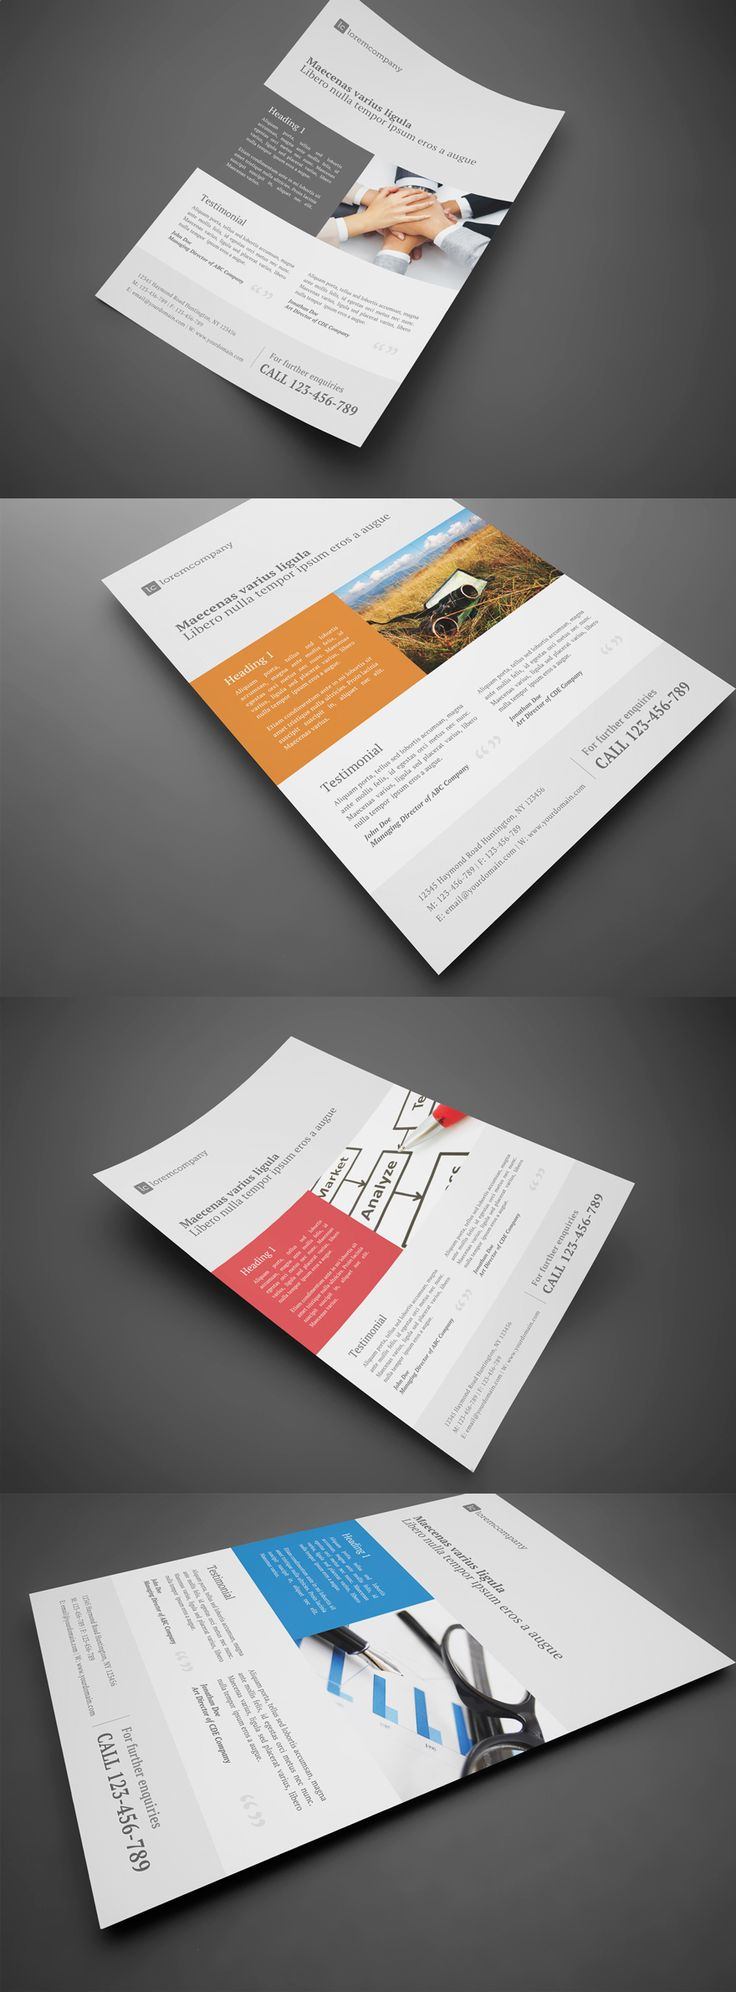 : Corporate Business, Cleanses, Marketing, Wide Spaces, Cleaning Professional, Graphics Design, Professional Corporate, Corporate Flyers, Business Cleaning